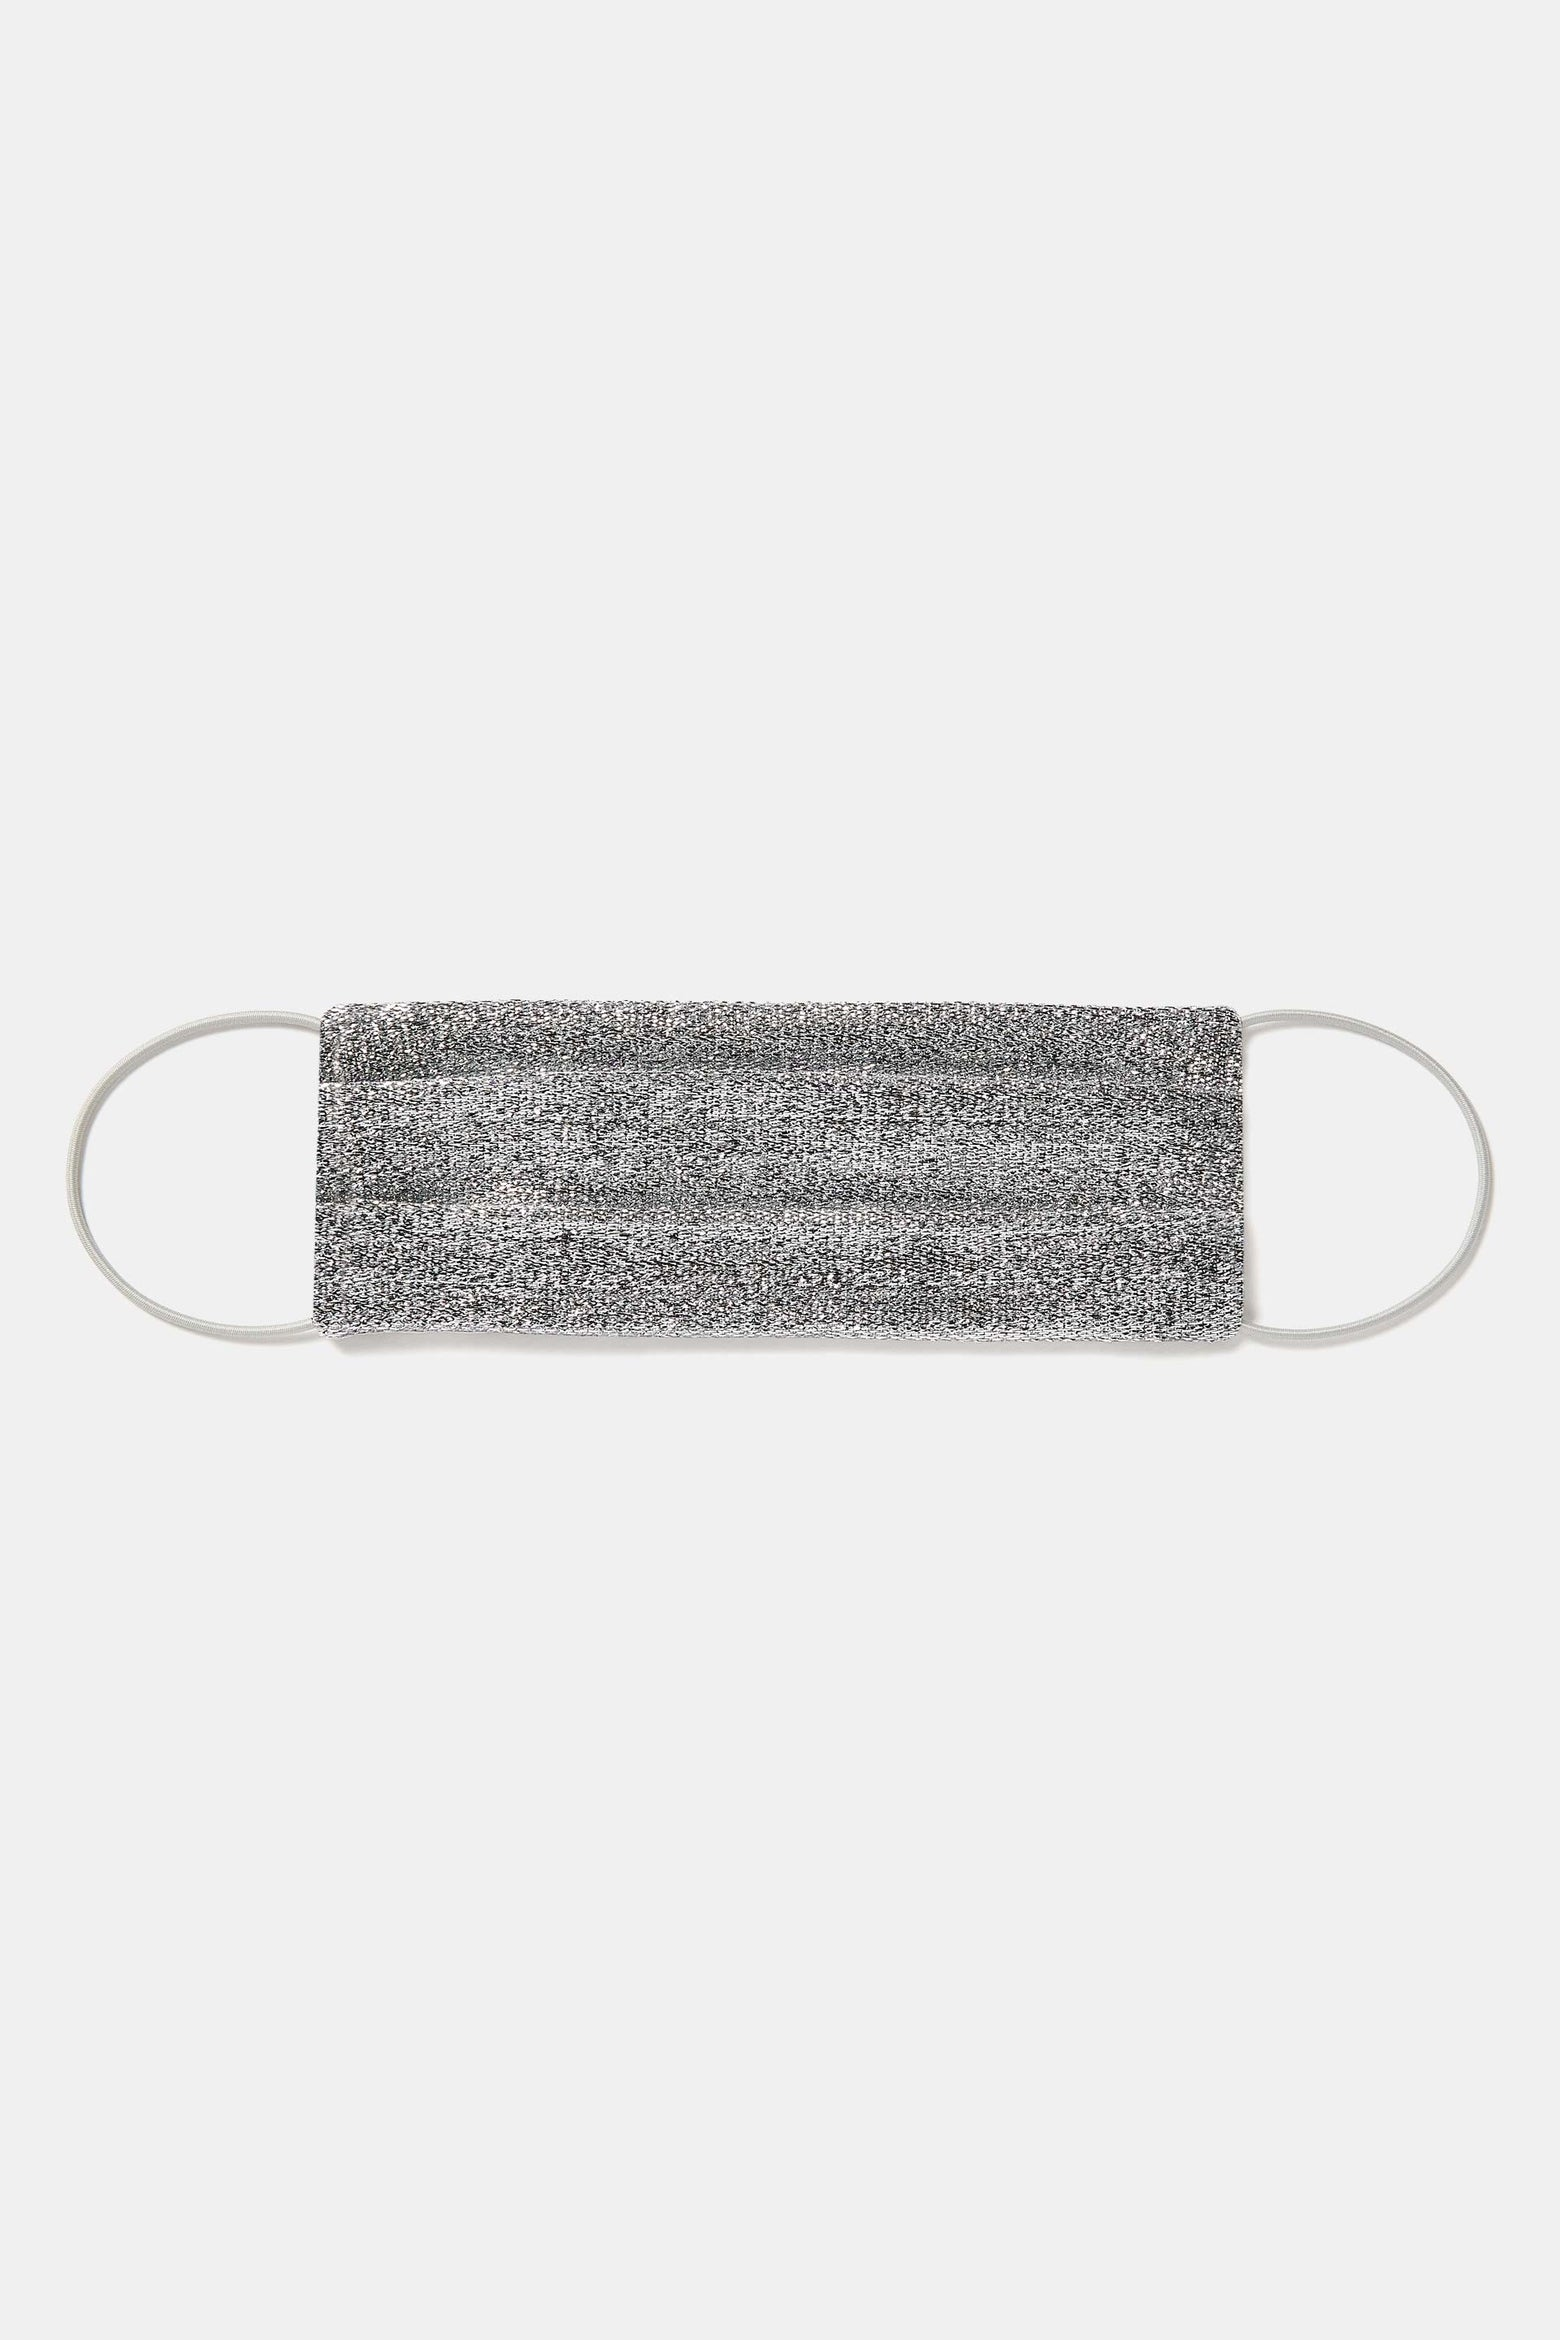 Face Mask With Elastic - Silver